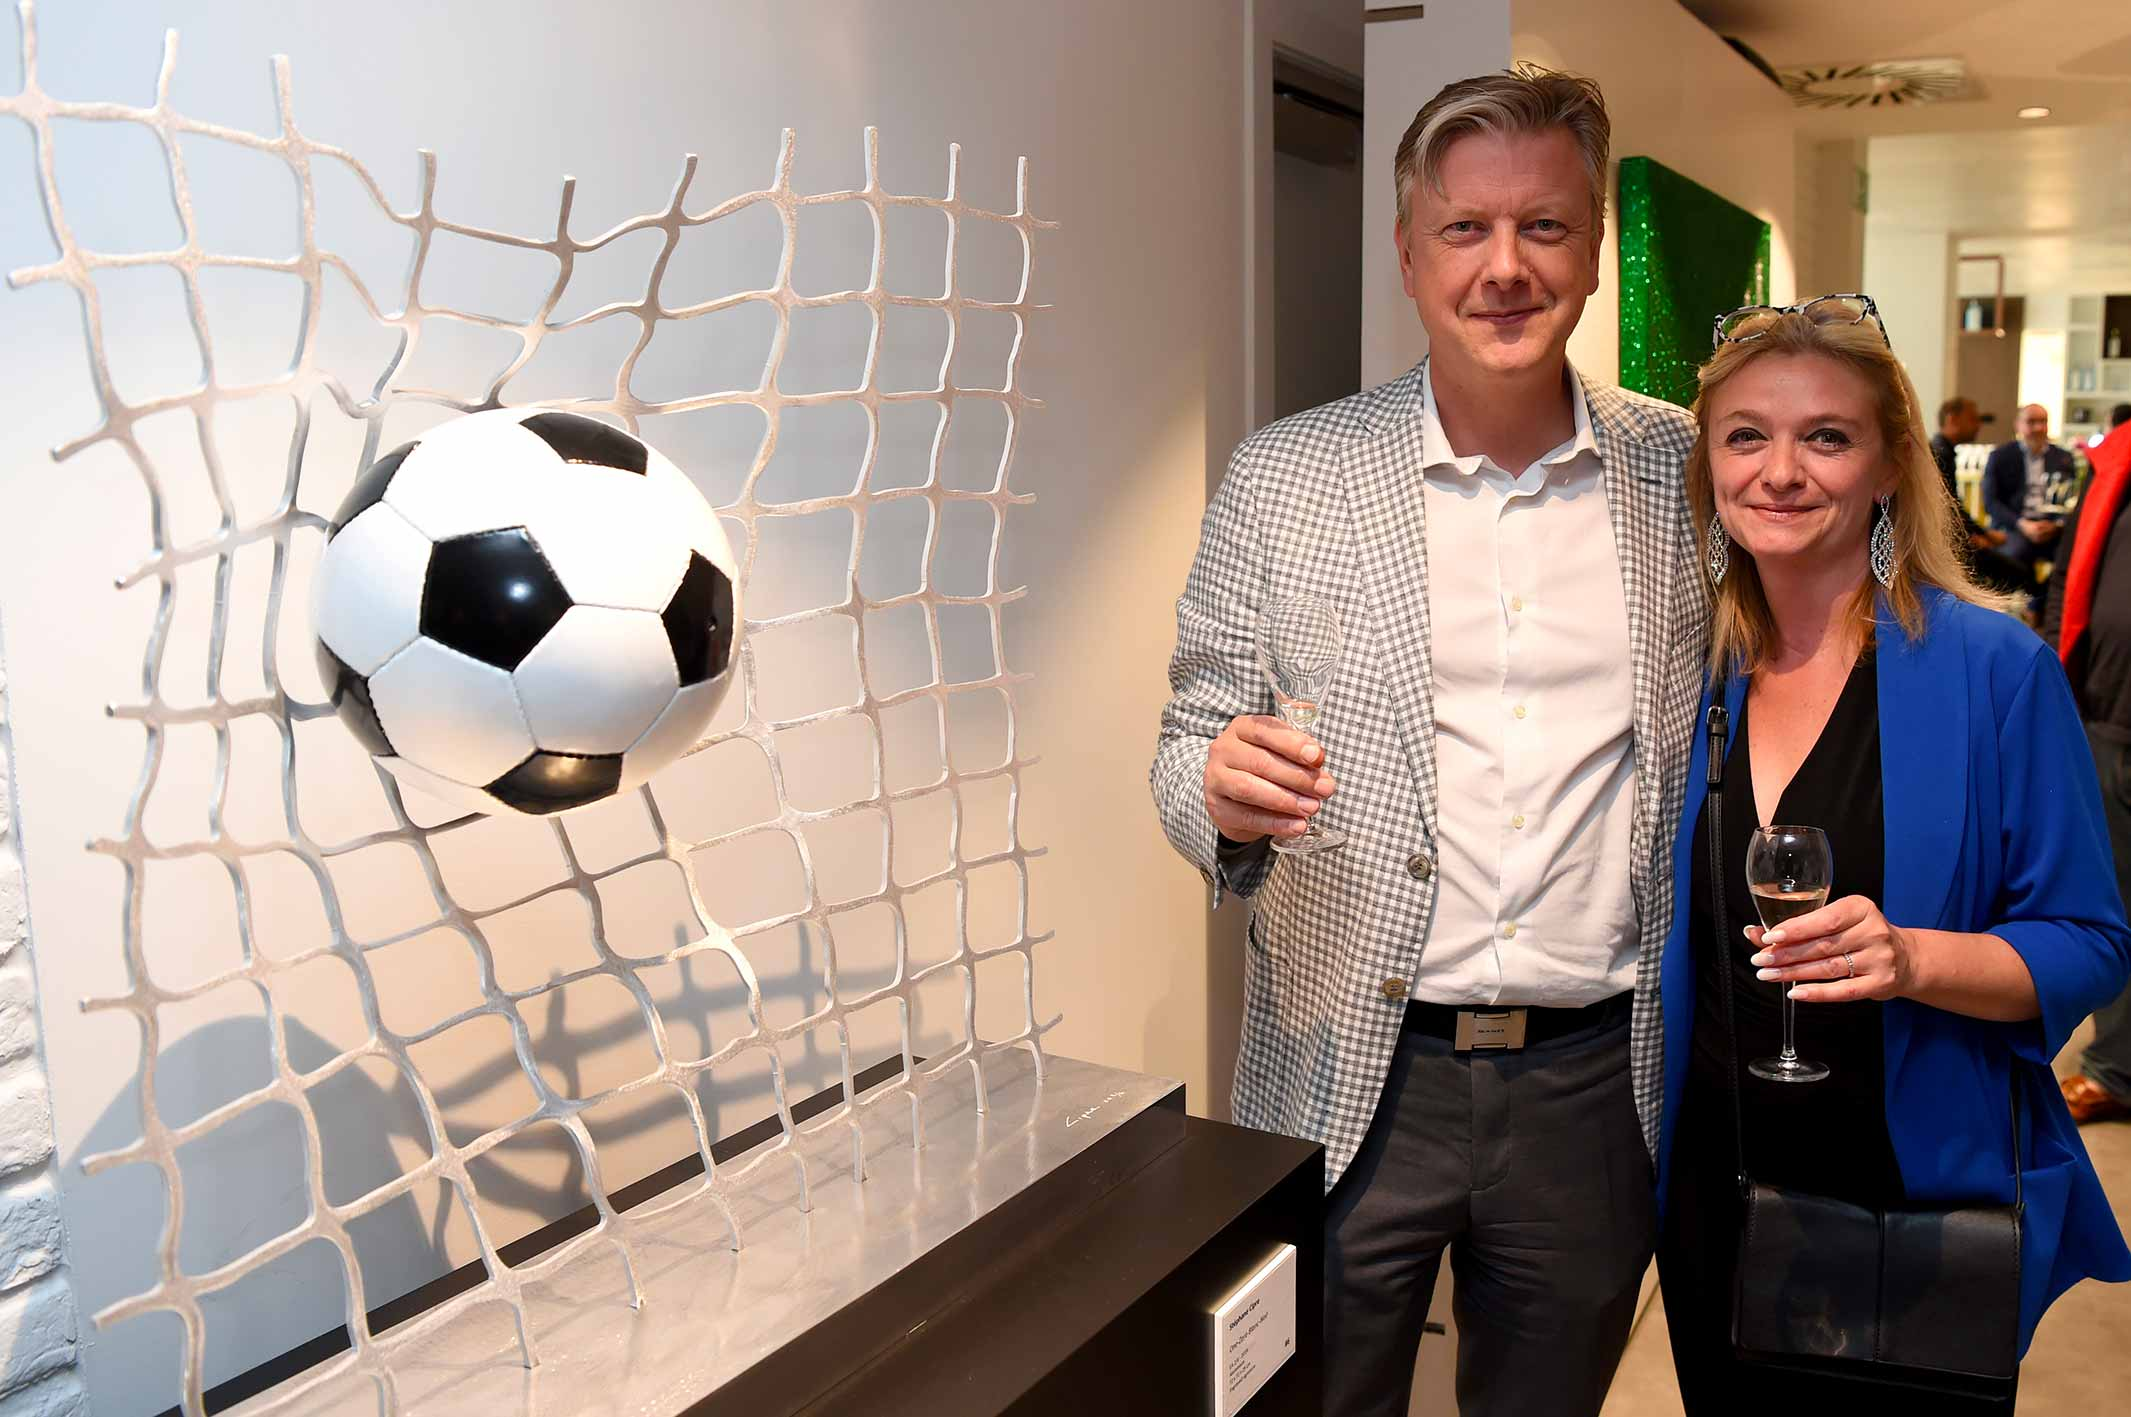 cipre_artiste_sculpture_contemporain_event_play_it_art_thomas_meunier_stadium_foot_aluminium_stade_anderlecht_brussels_guest_invites_couple.jpg